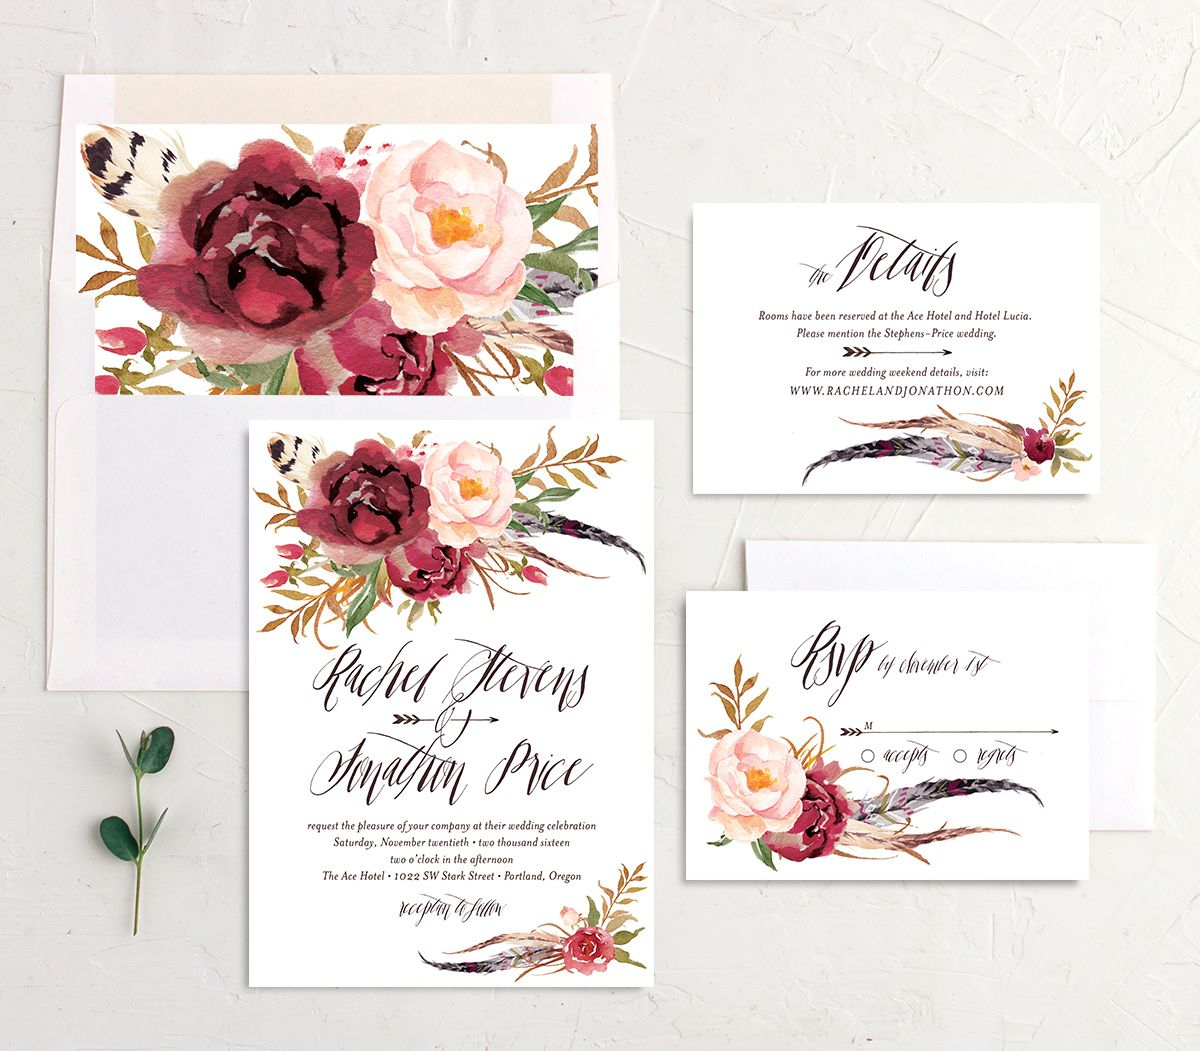 bohemian floral wedding invitation stationery suite in burgundy